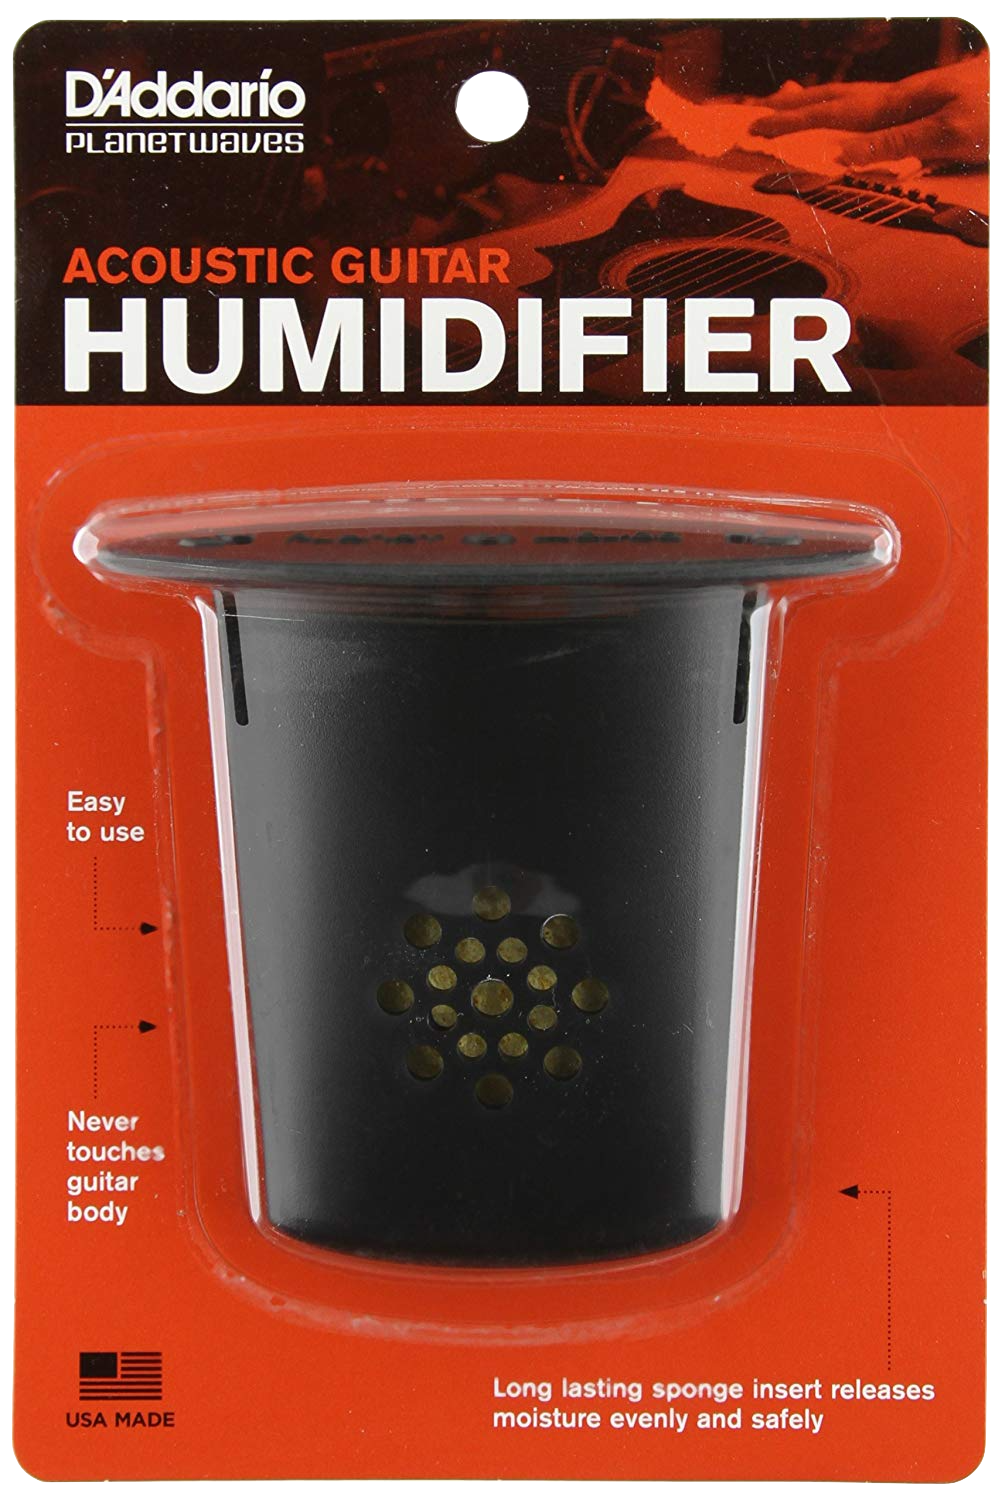 Acoustic Guitar Humidifier from D'Addario